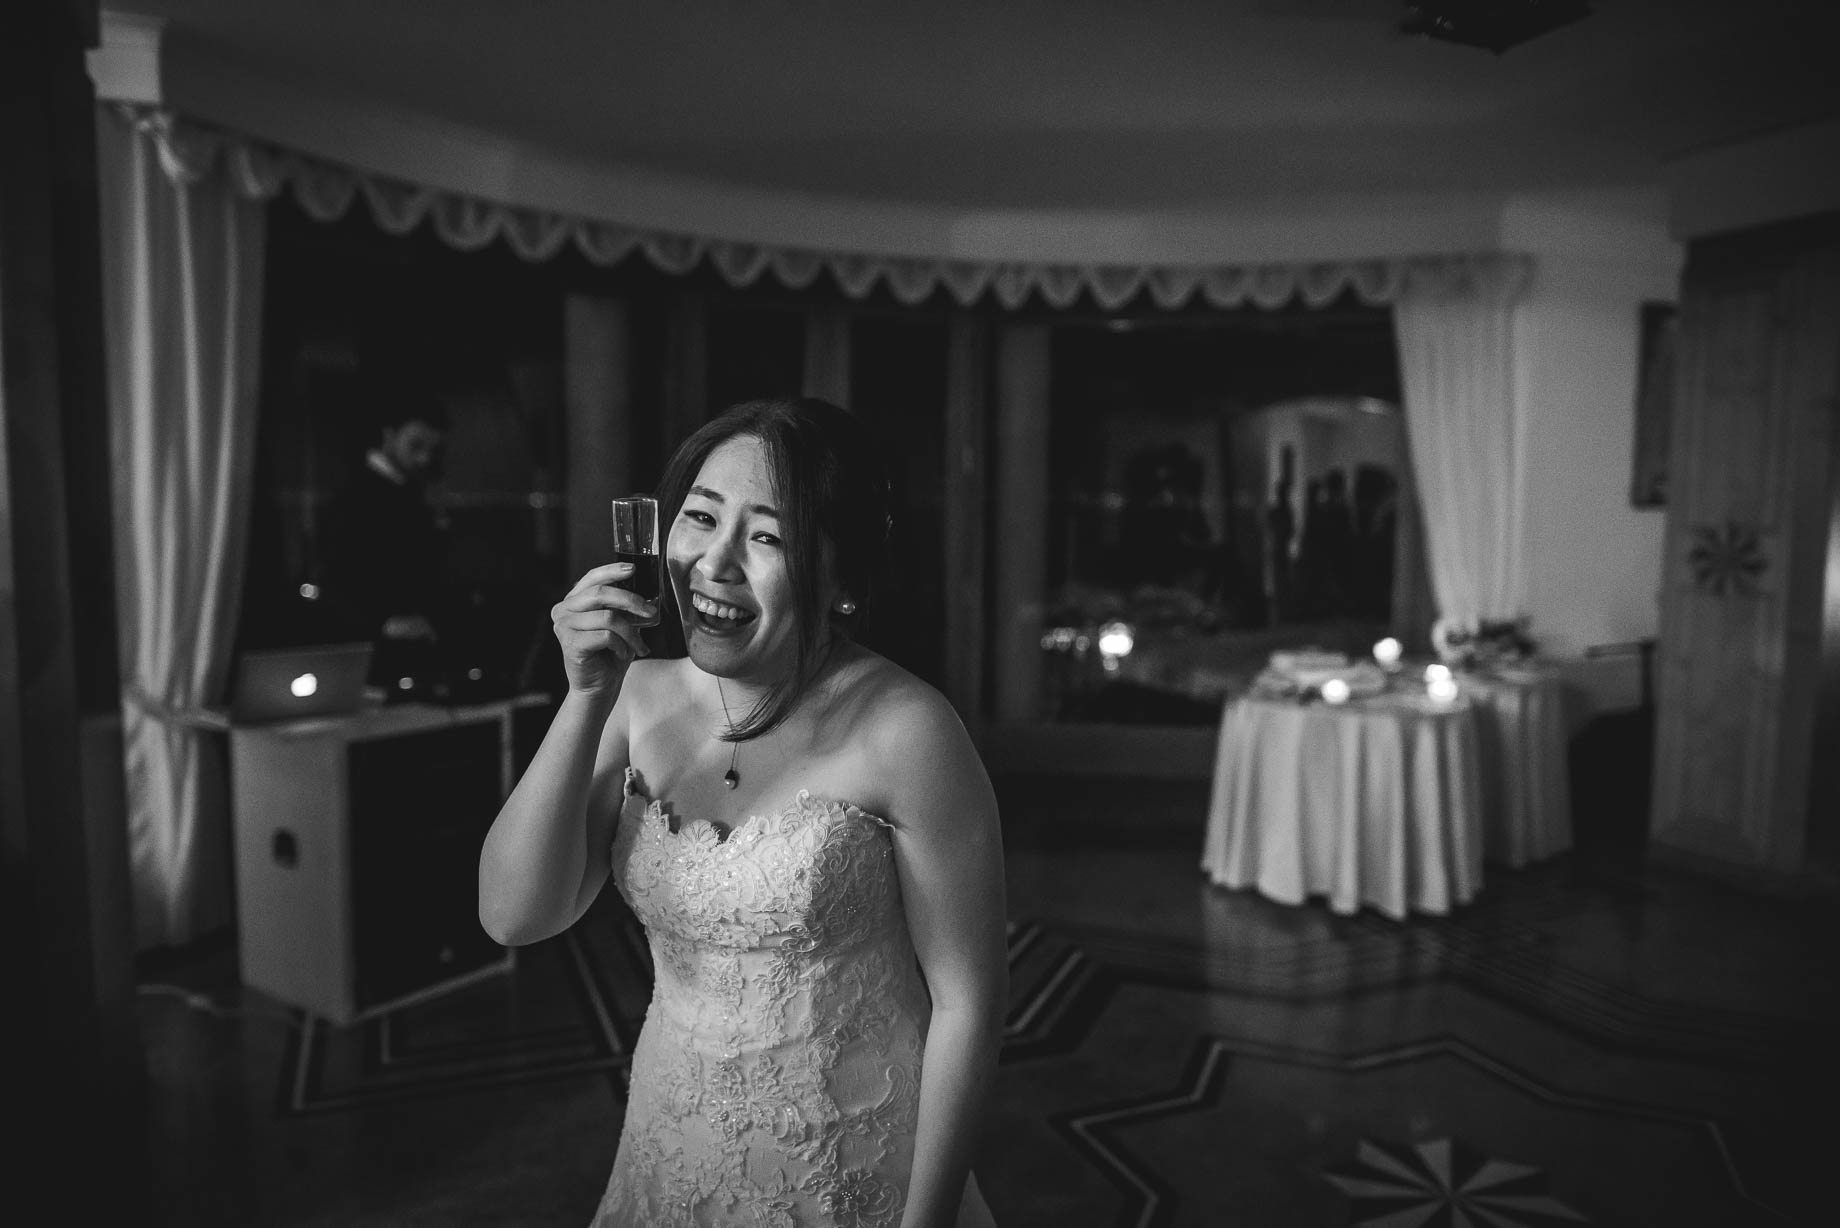 Sorrento wedding photography - Gloria and Eric (187 of 211)